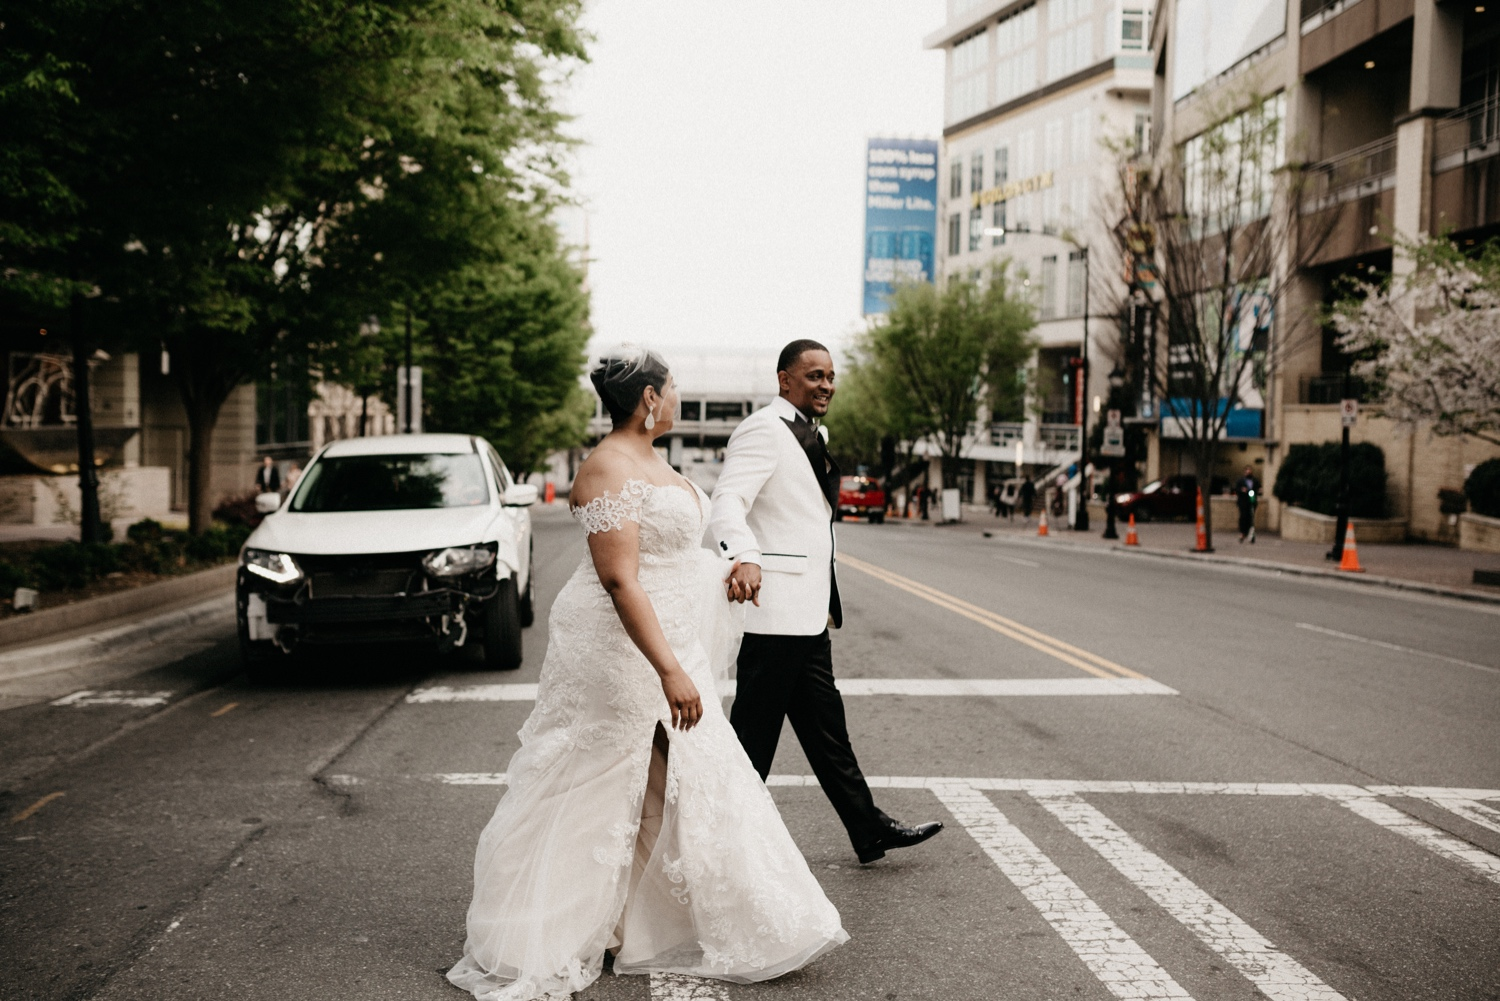 50_Ritz-carlton-wedding_charlotteNC_charlotteweddingphotographer.jpg